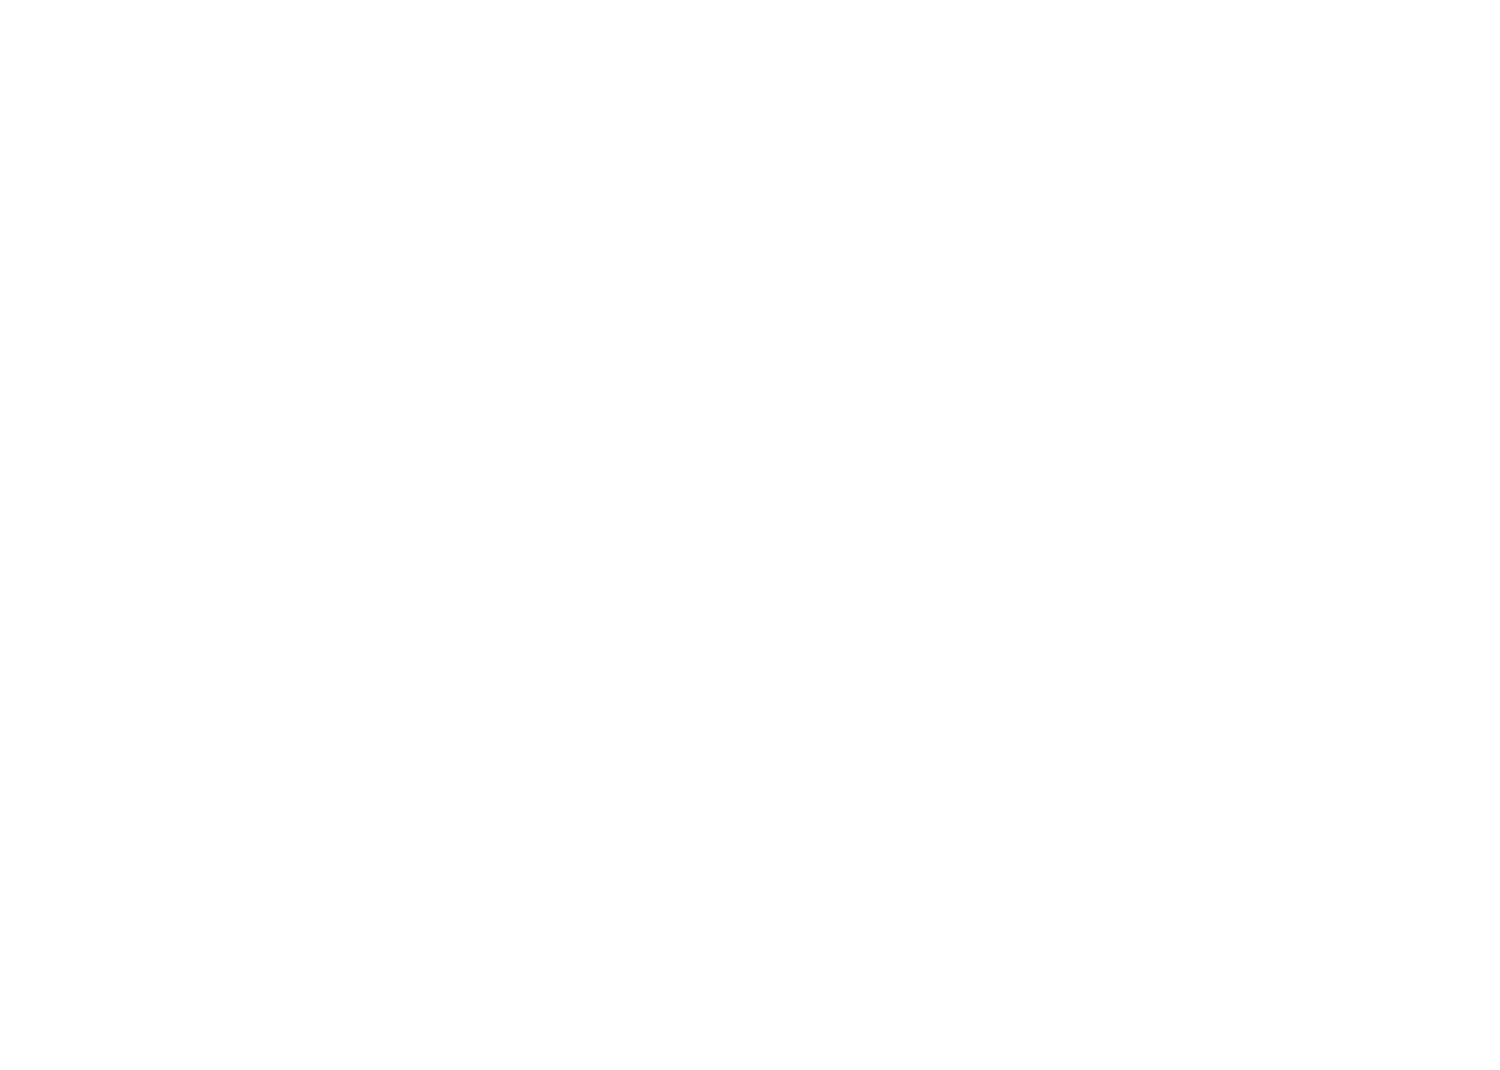 Four Peaks Media Group